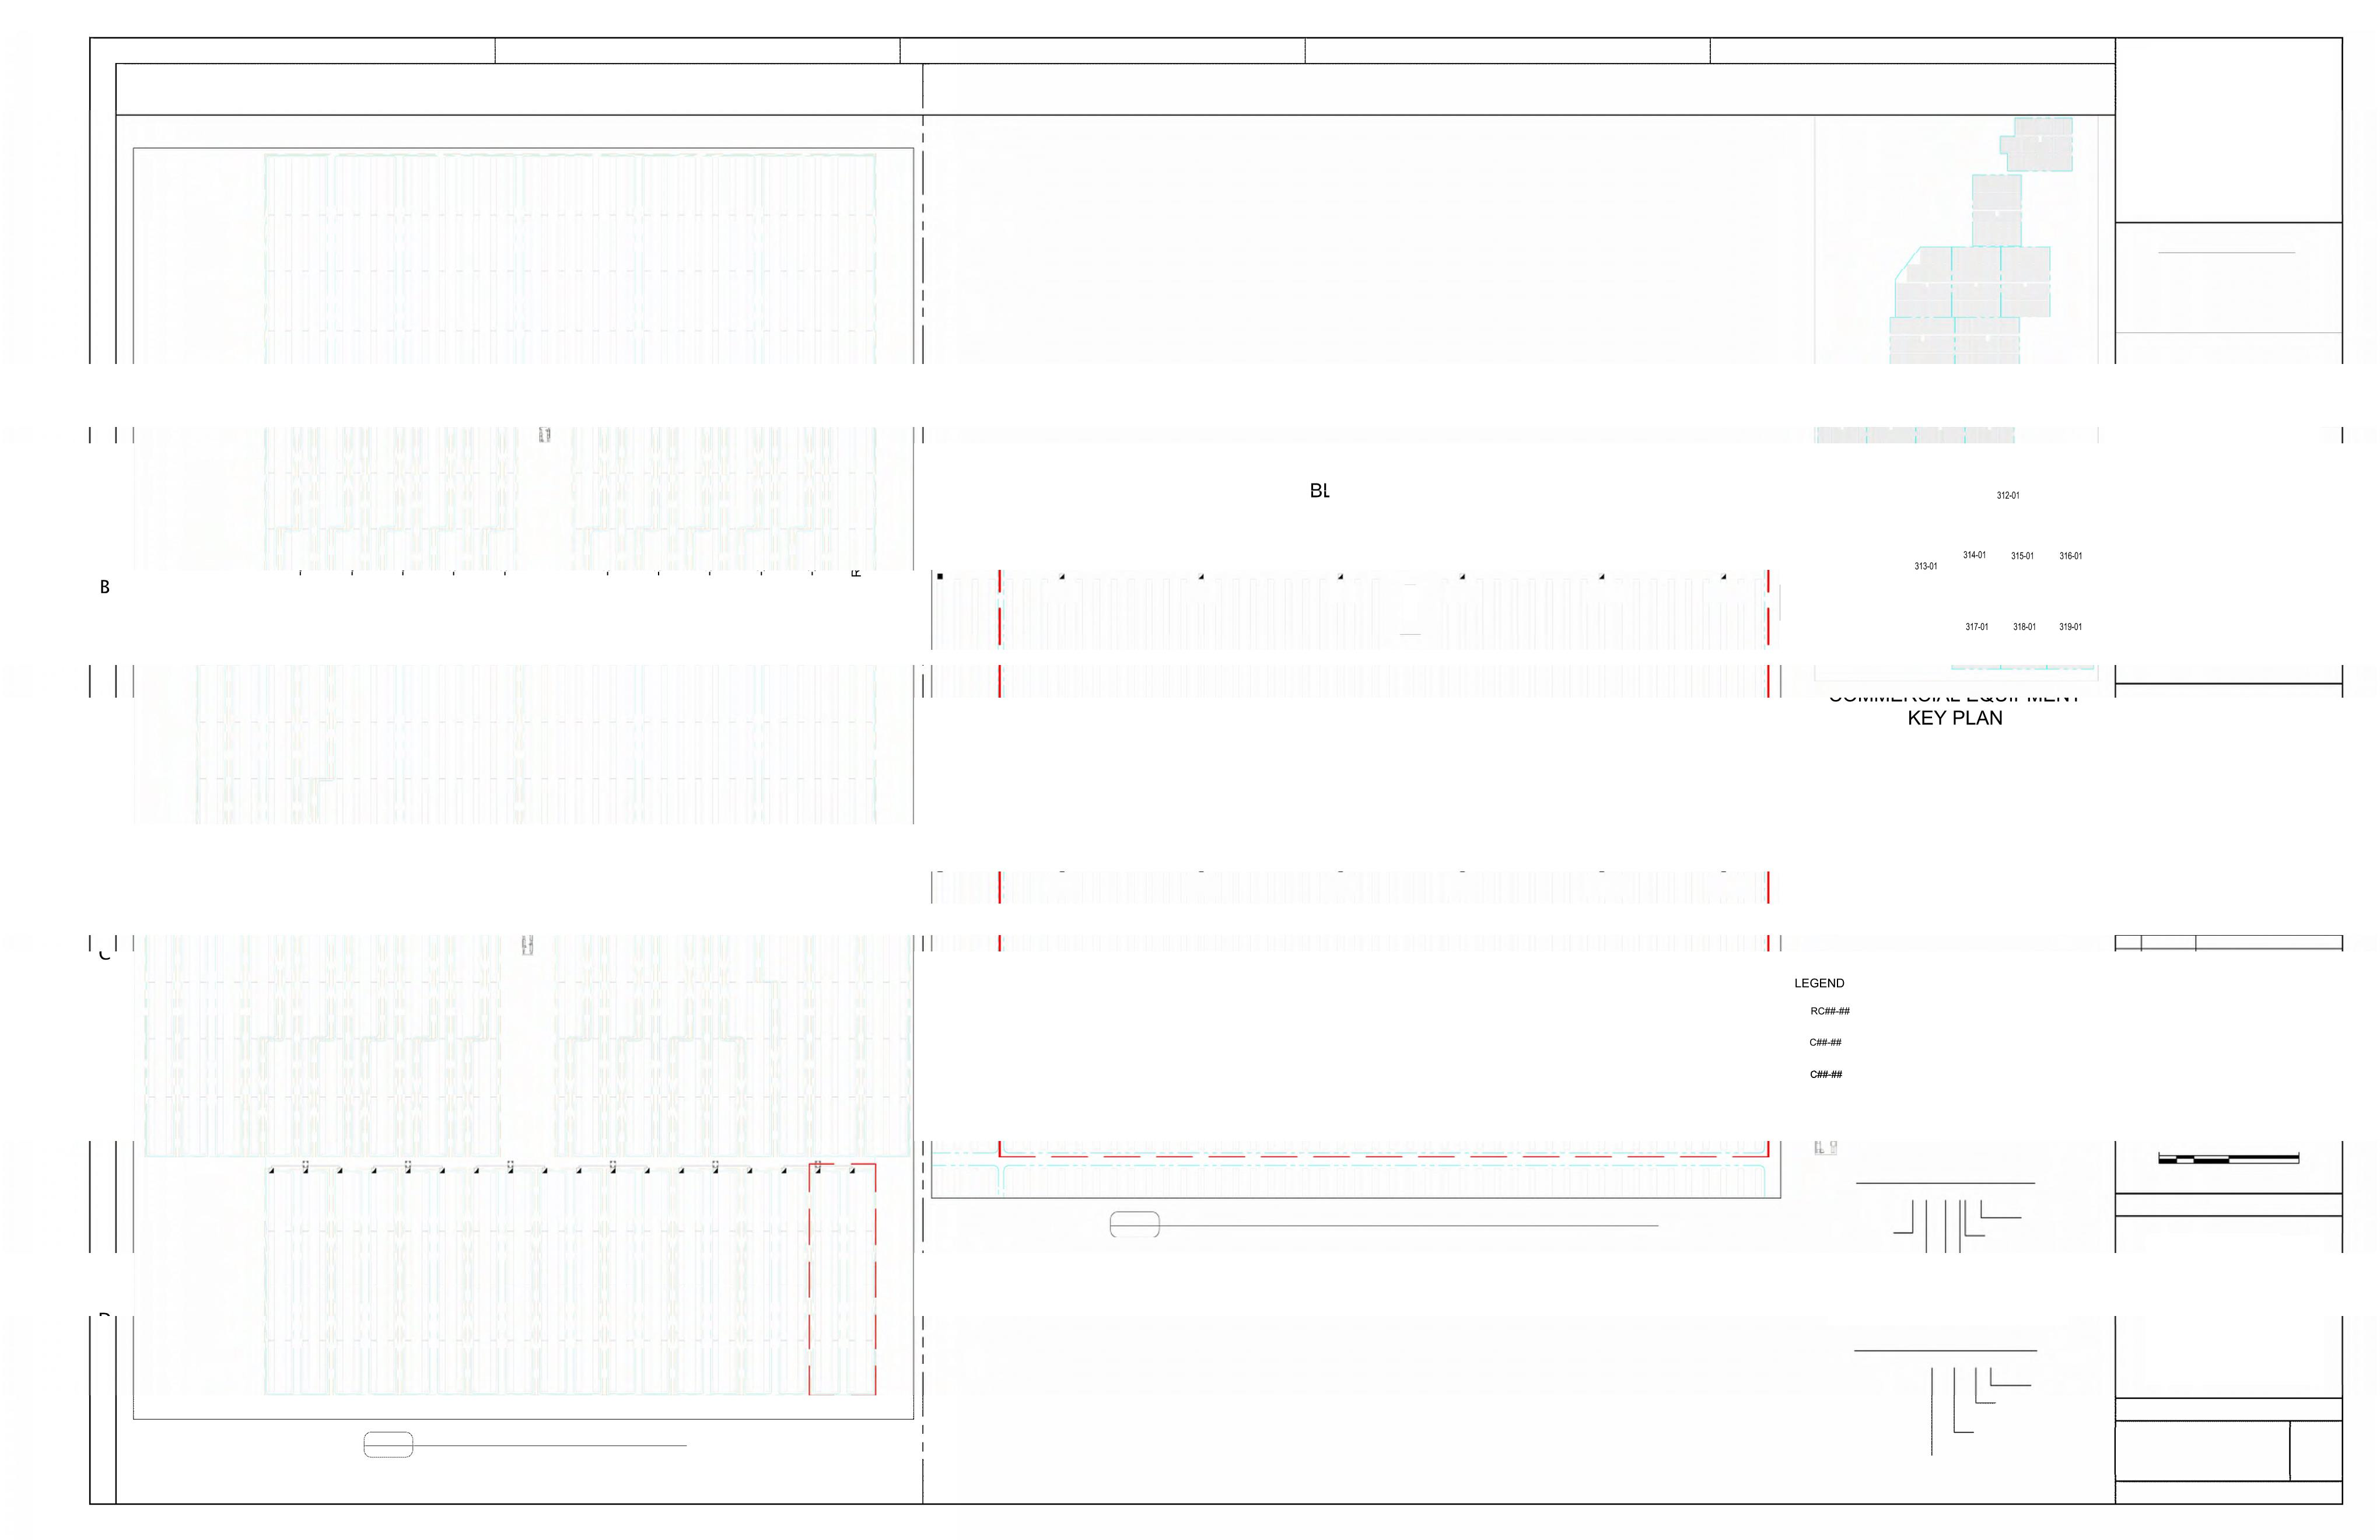 Ddedit Not Working In Autocad Auto Electrical Wiring Diagram Fuel Mercedes Filter Benz Location1996s500 Related With